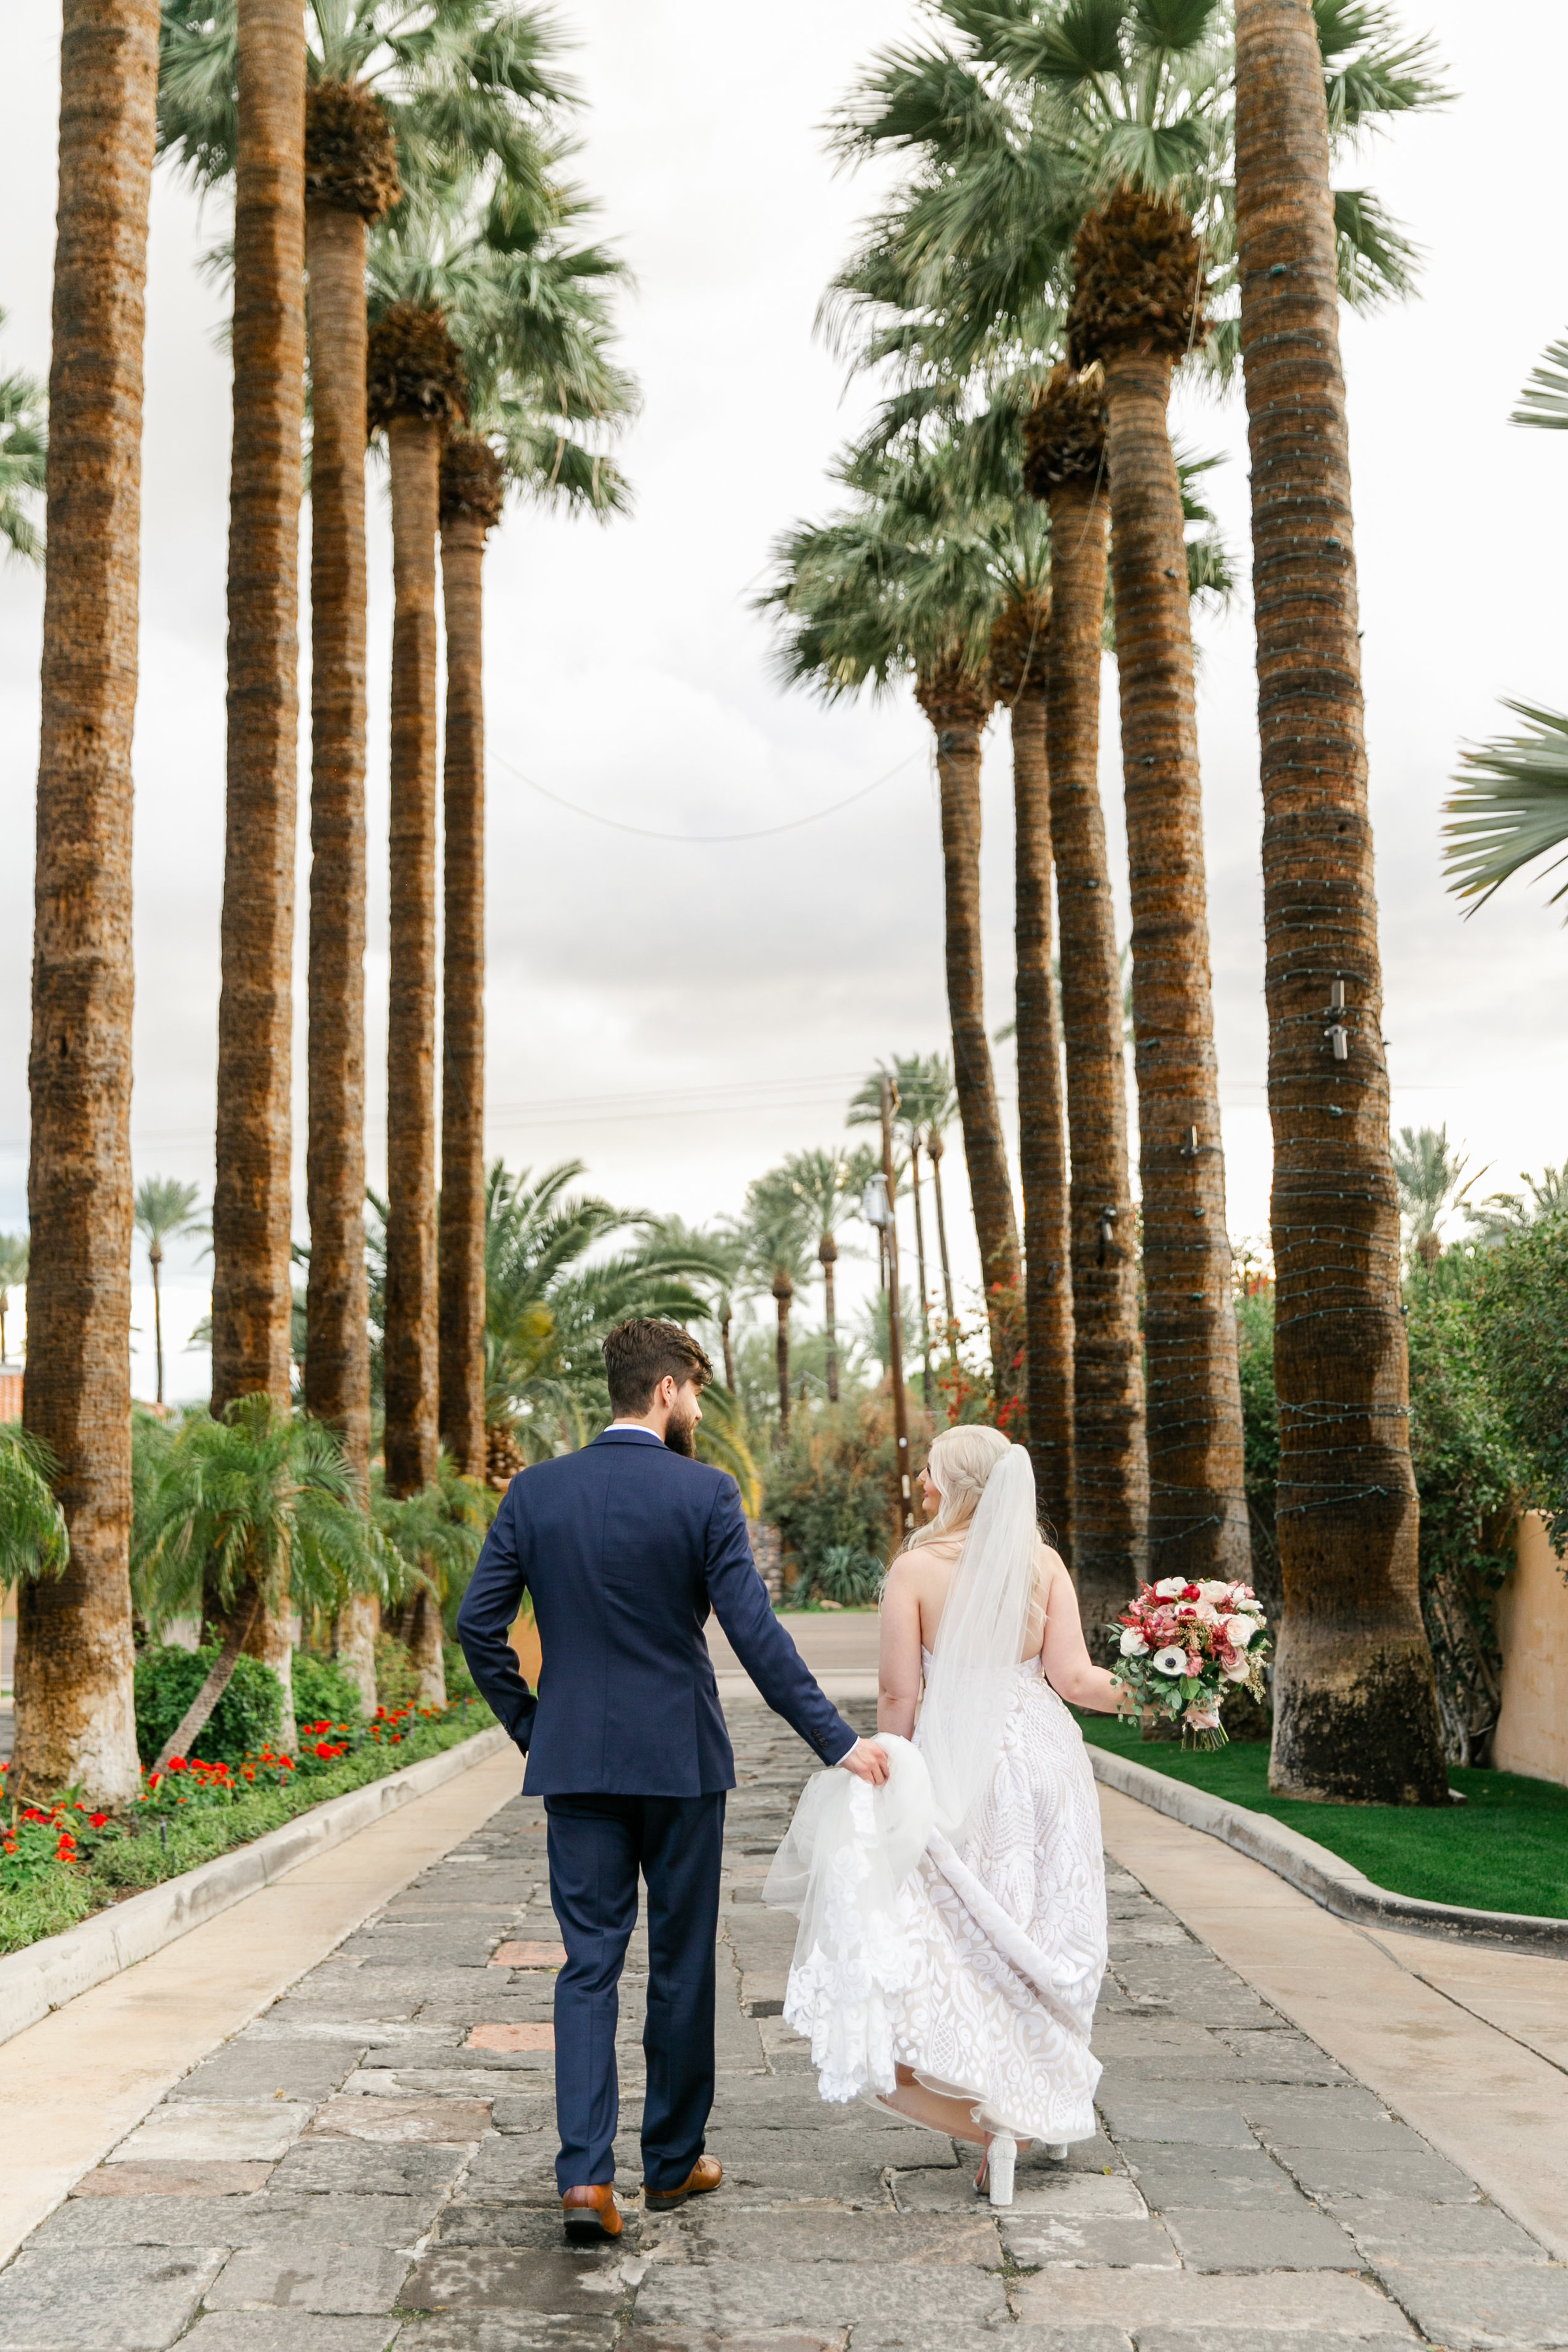 Karlie Colleen Photography - The Royal Palms Wedding - Some Like It Classic - Alex & Sam-570